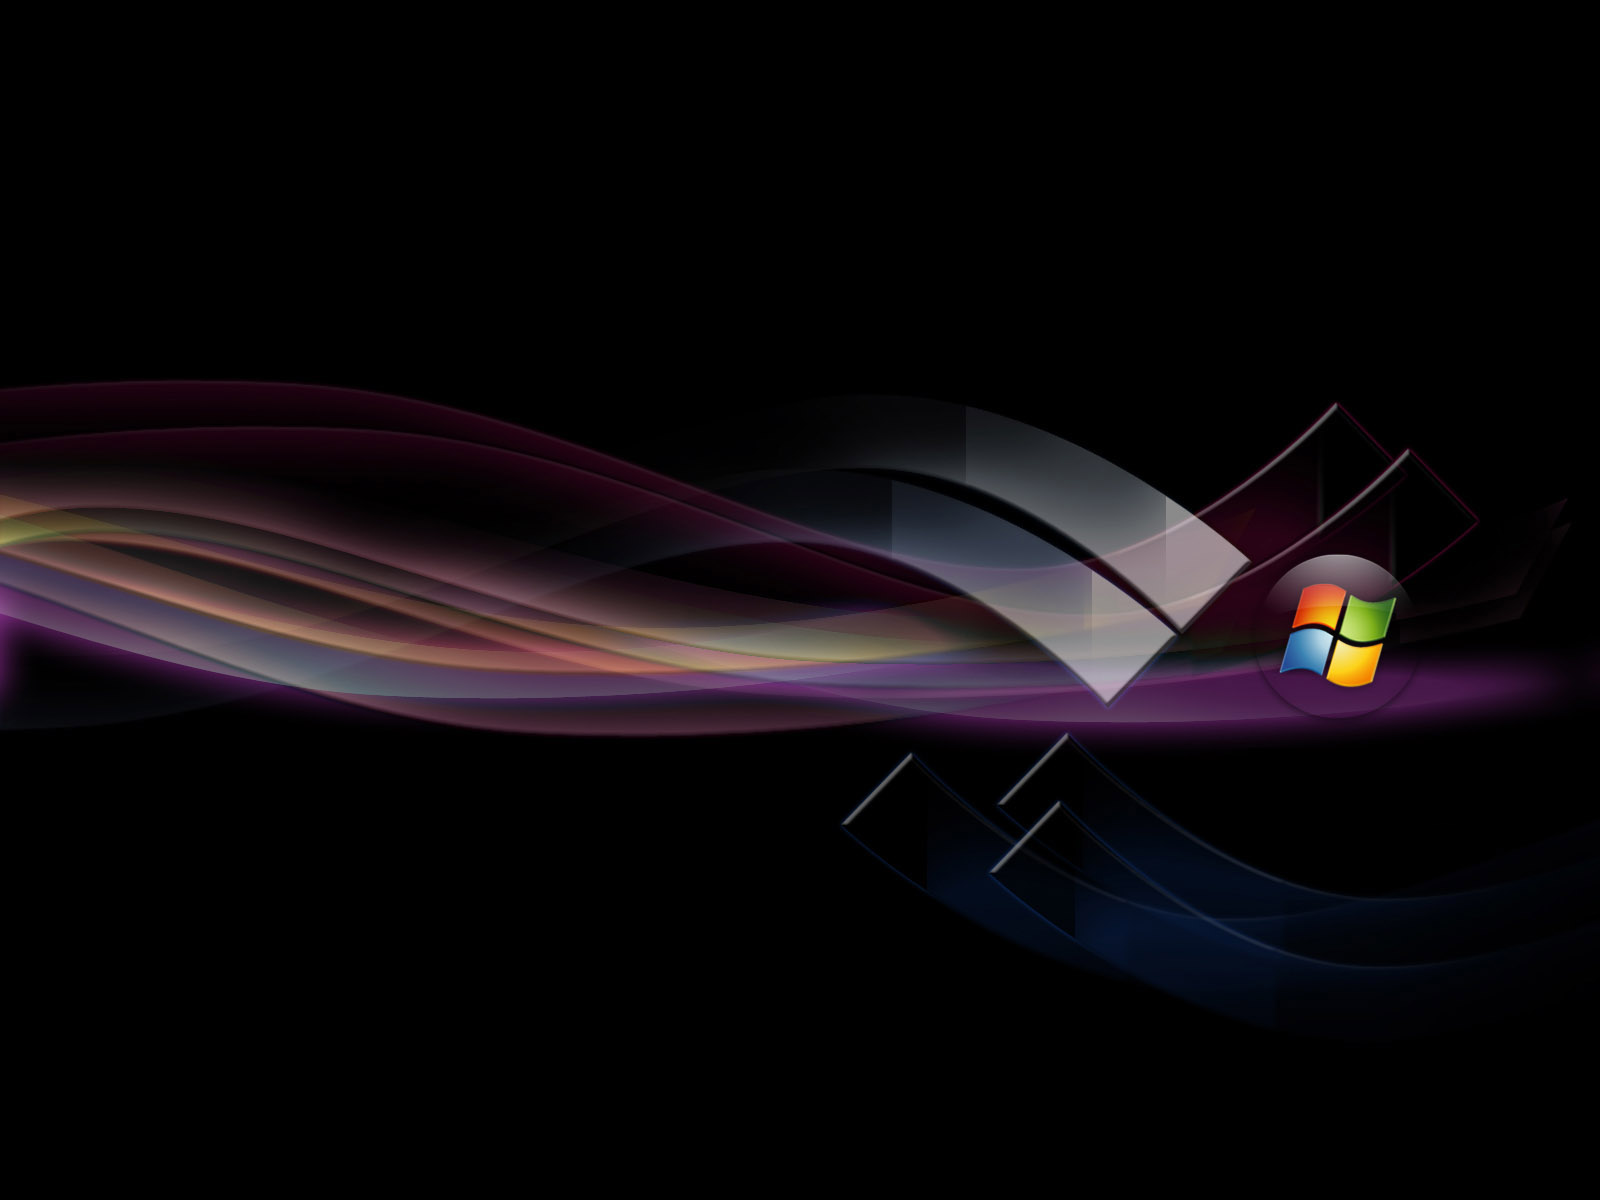 Windows microsoft windows wallpaper 34435769 fanpop for What is microsoft windows